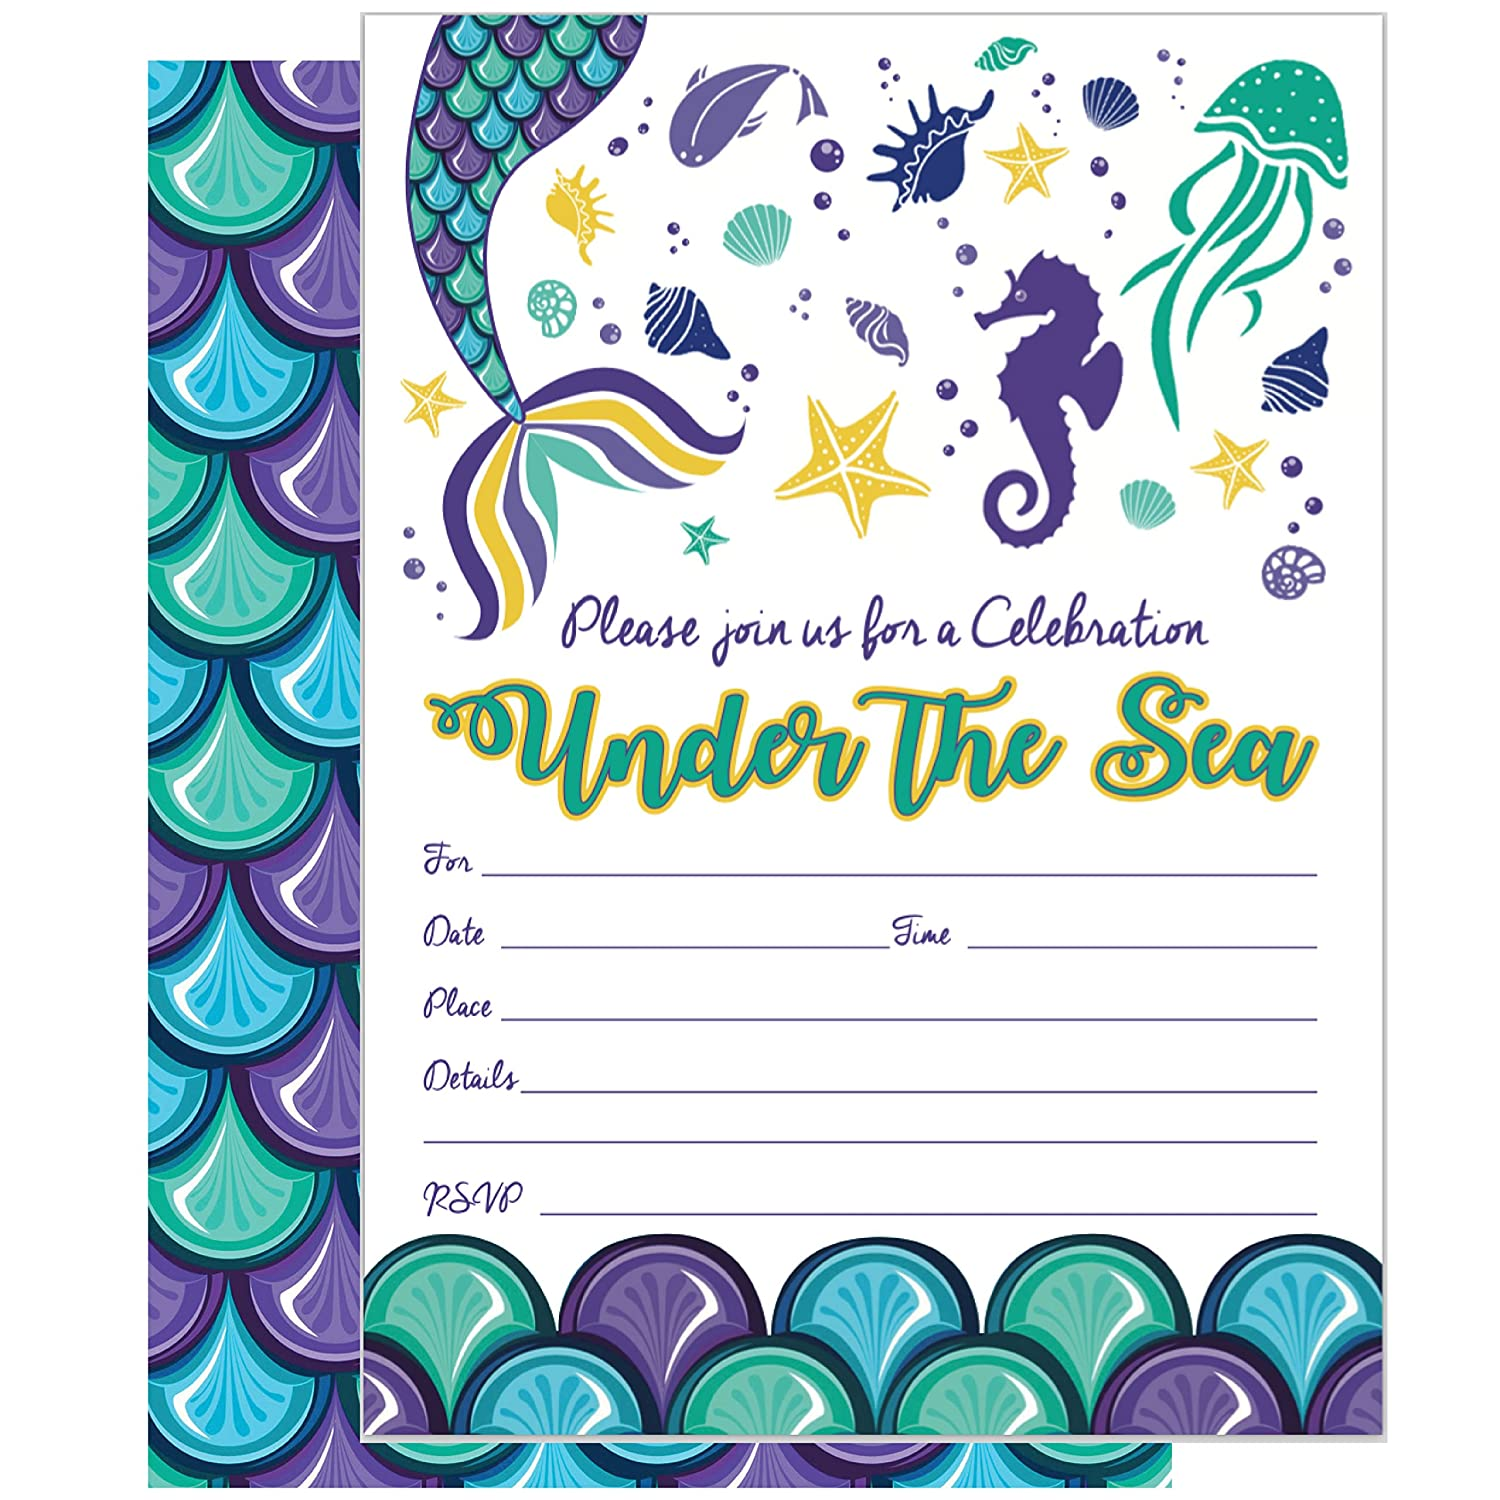 Rock Era Inc Mermaid Party Invitations for Kids Pack of 25 Under The Sea Birthday Invites with Envelopes Tell Everyone About Your Girls or Boys Magical Party with These Invitation Postcards